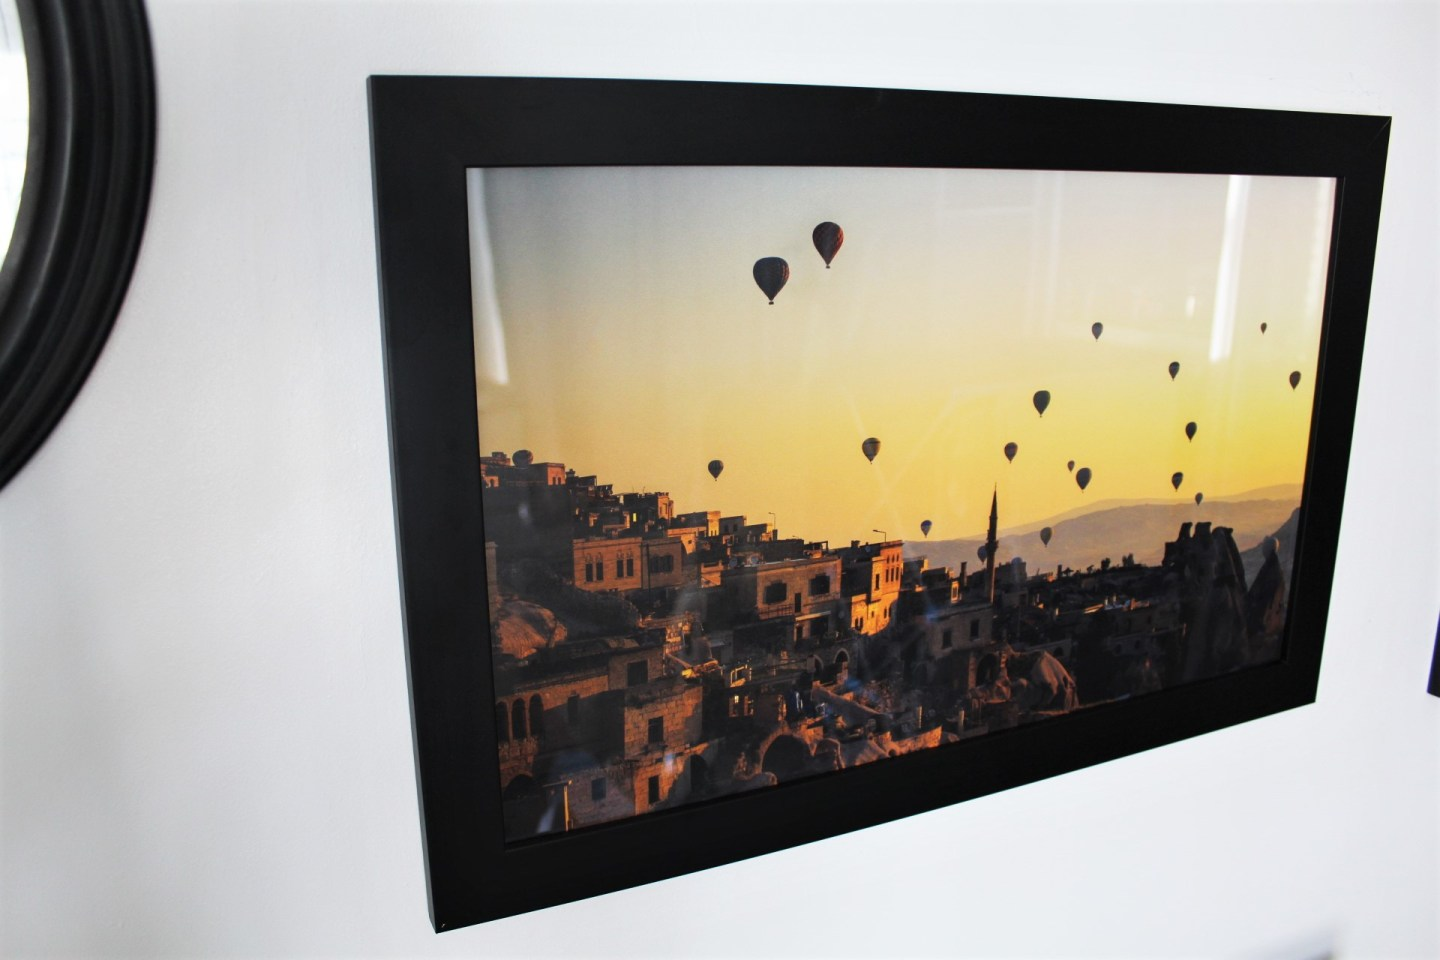 Photowall 1000 + Beautiful Inexpensive Art Poster For Your Home Improvements